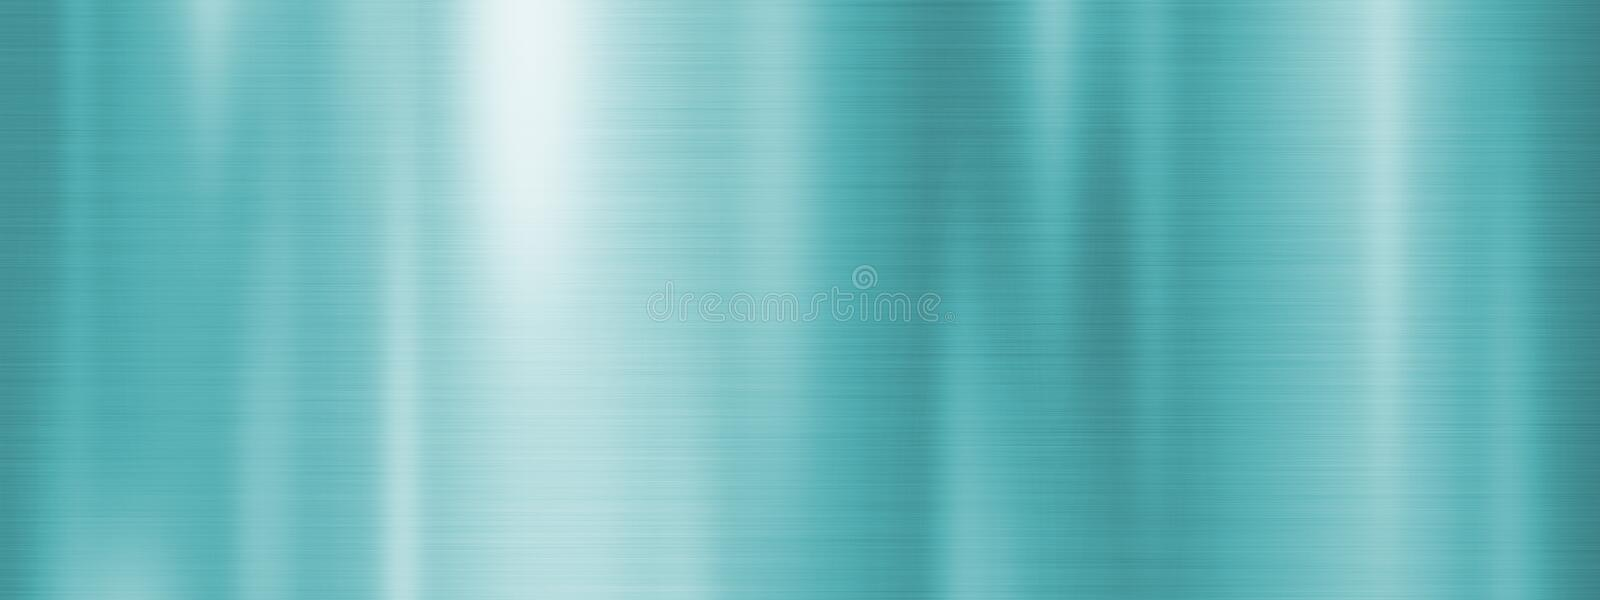 Green blue metal texture background design stock photography